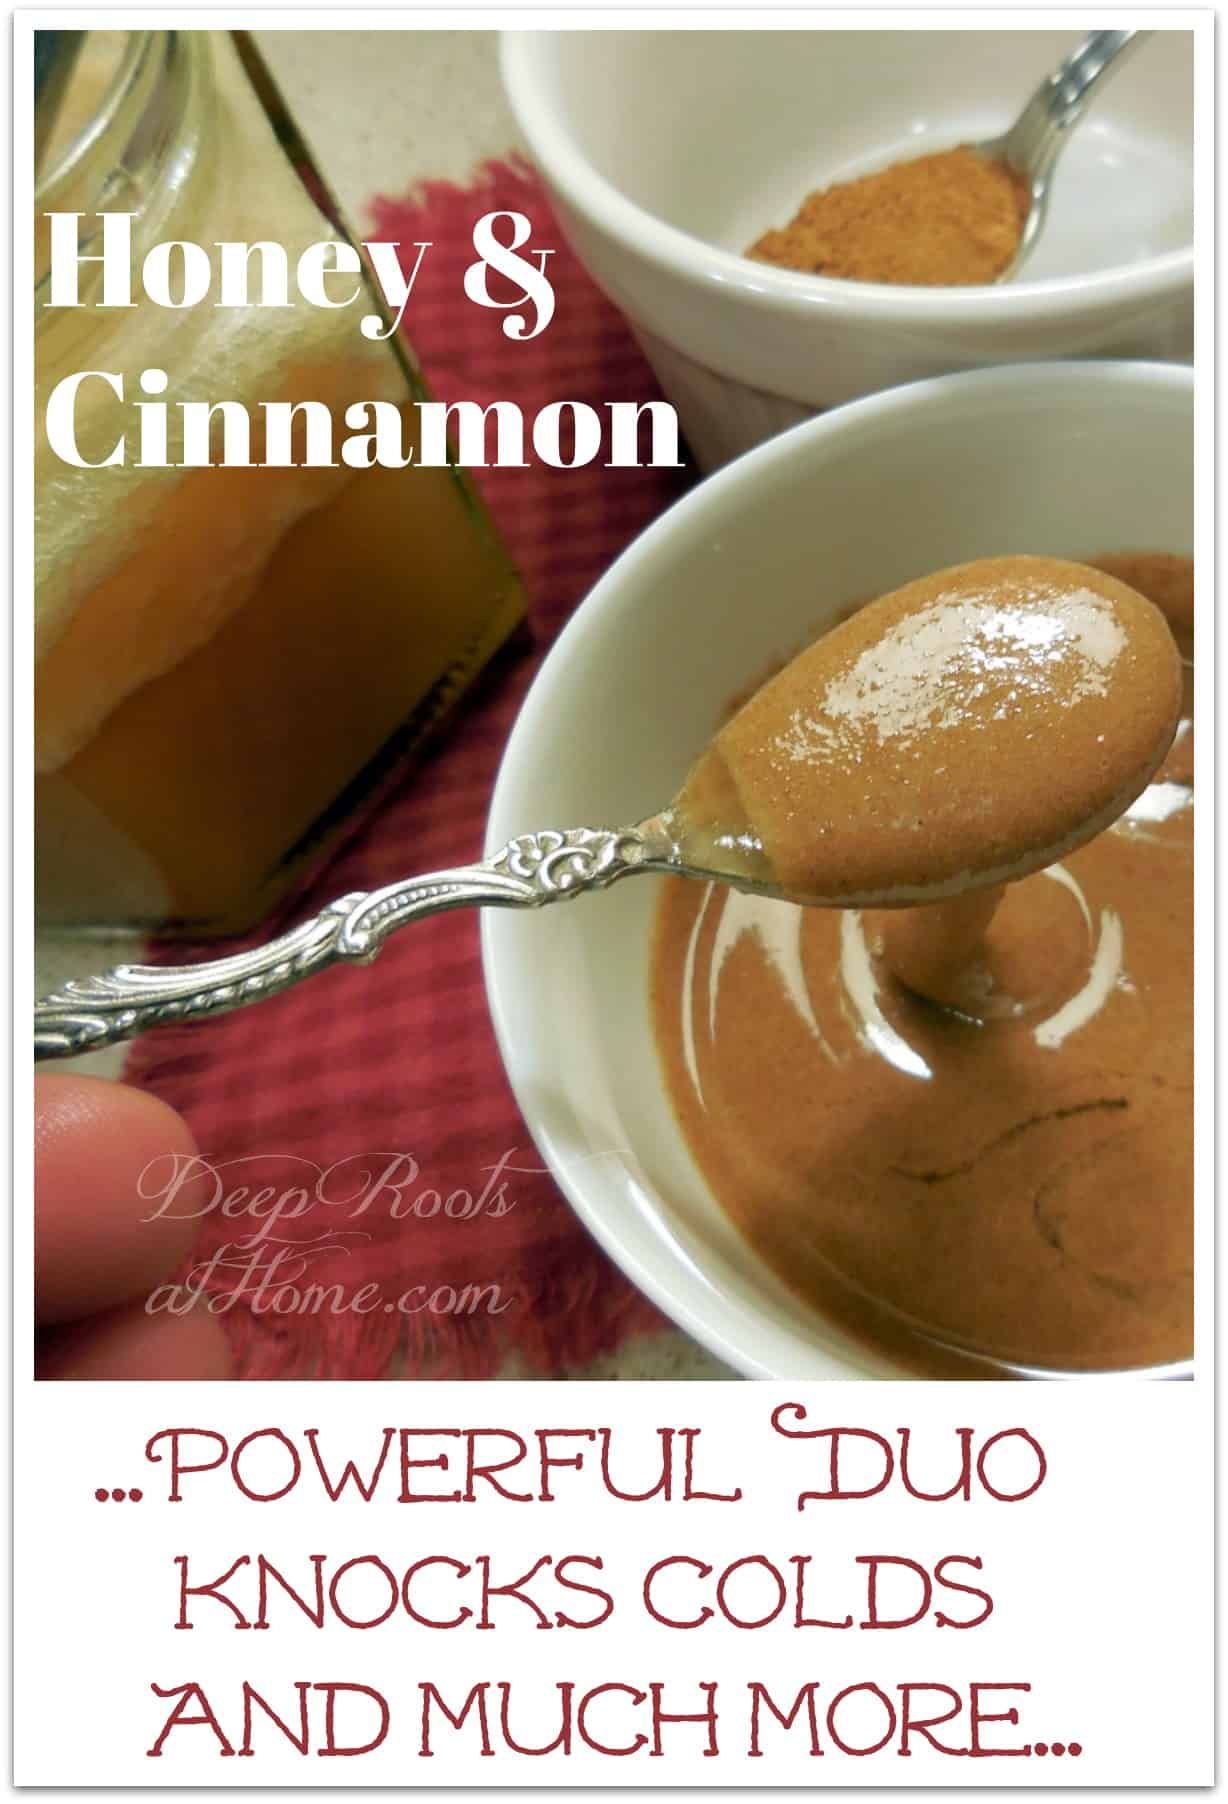 Honey and Cinnamon ~Powerful Duo Knocks Colds and Diabetes, knock out a cold, beat the flu, influenza, sore throat, chest congestion, runny nose, upset stomach, indigestion, reduce blood pressure, good for bladder infections, fights infections, relieves arthritis pain, prevents gas, coffee is dehydrating, drink more water, wound cleansing, builds immune system, Redmond's Real, anti-bacterial, anti-viral, anti-fungal, Celtic, or Himalayan, minerals, NaturalNews.com, No-Side-Effect Cough Remedy, no chemicals, no additives, free from colors or dyes, health benefits, anti-inflammatory, stabilizes blood sugar levels, LiveStrong.com, Snopes, treat disease, folk medicine, natural remedies, help for bladder infections, diabetes, Type 1 and 2, raw, local, healthy lifestyle, Encyclopedia of Healing Foods, cure for colds, old-fashioned, home remedy, DIY, medicine cabinet, herbal remedies,